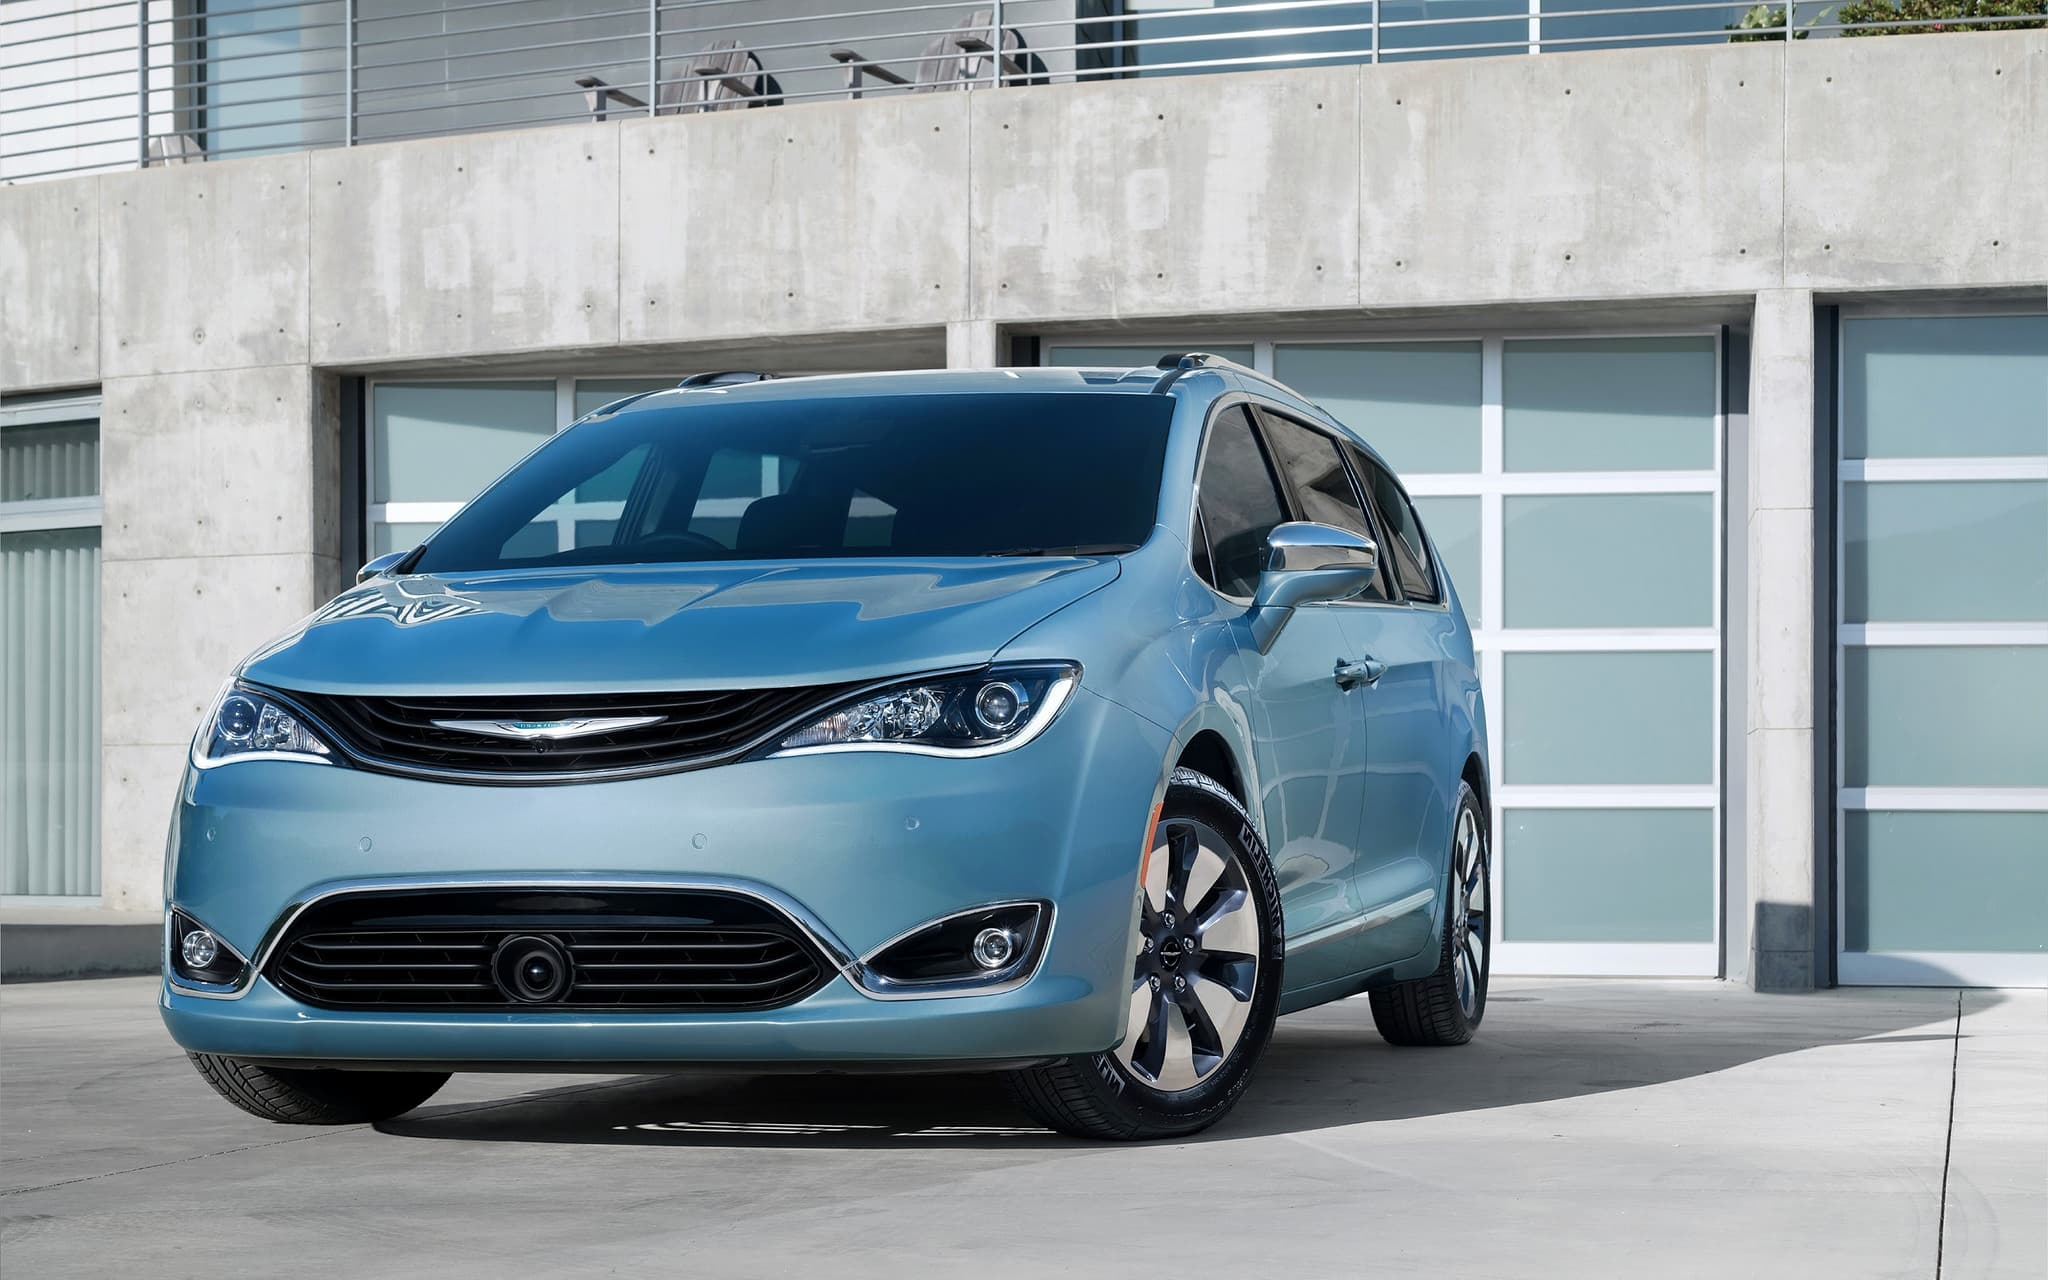 Chrysler Pacifica Minivan 2016 wallpapers